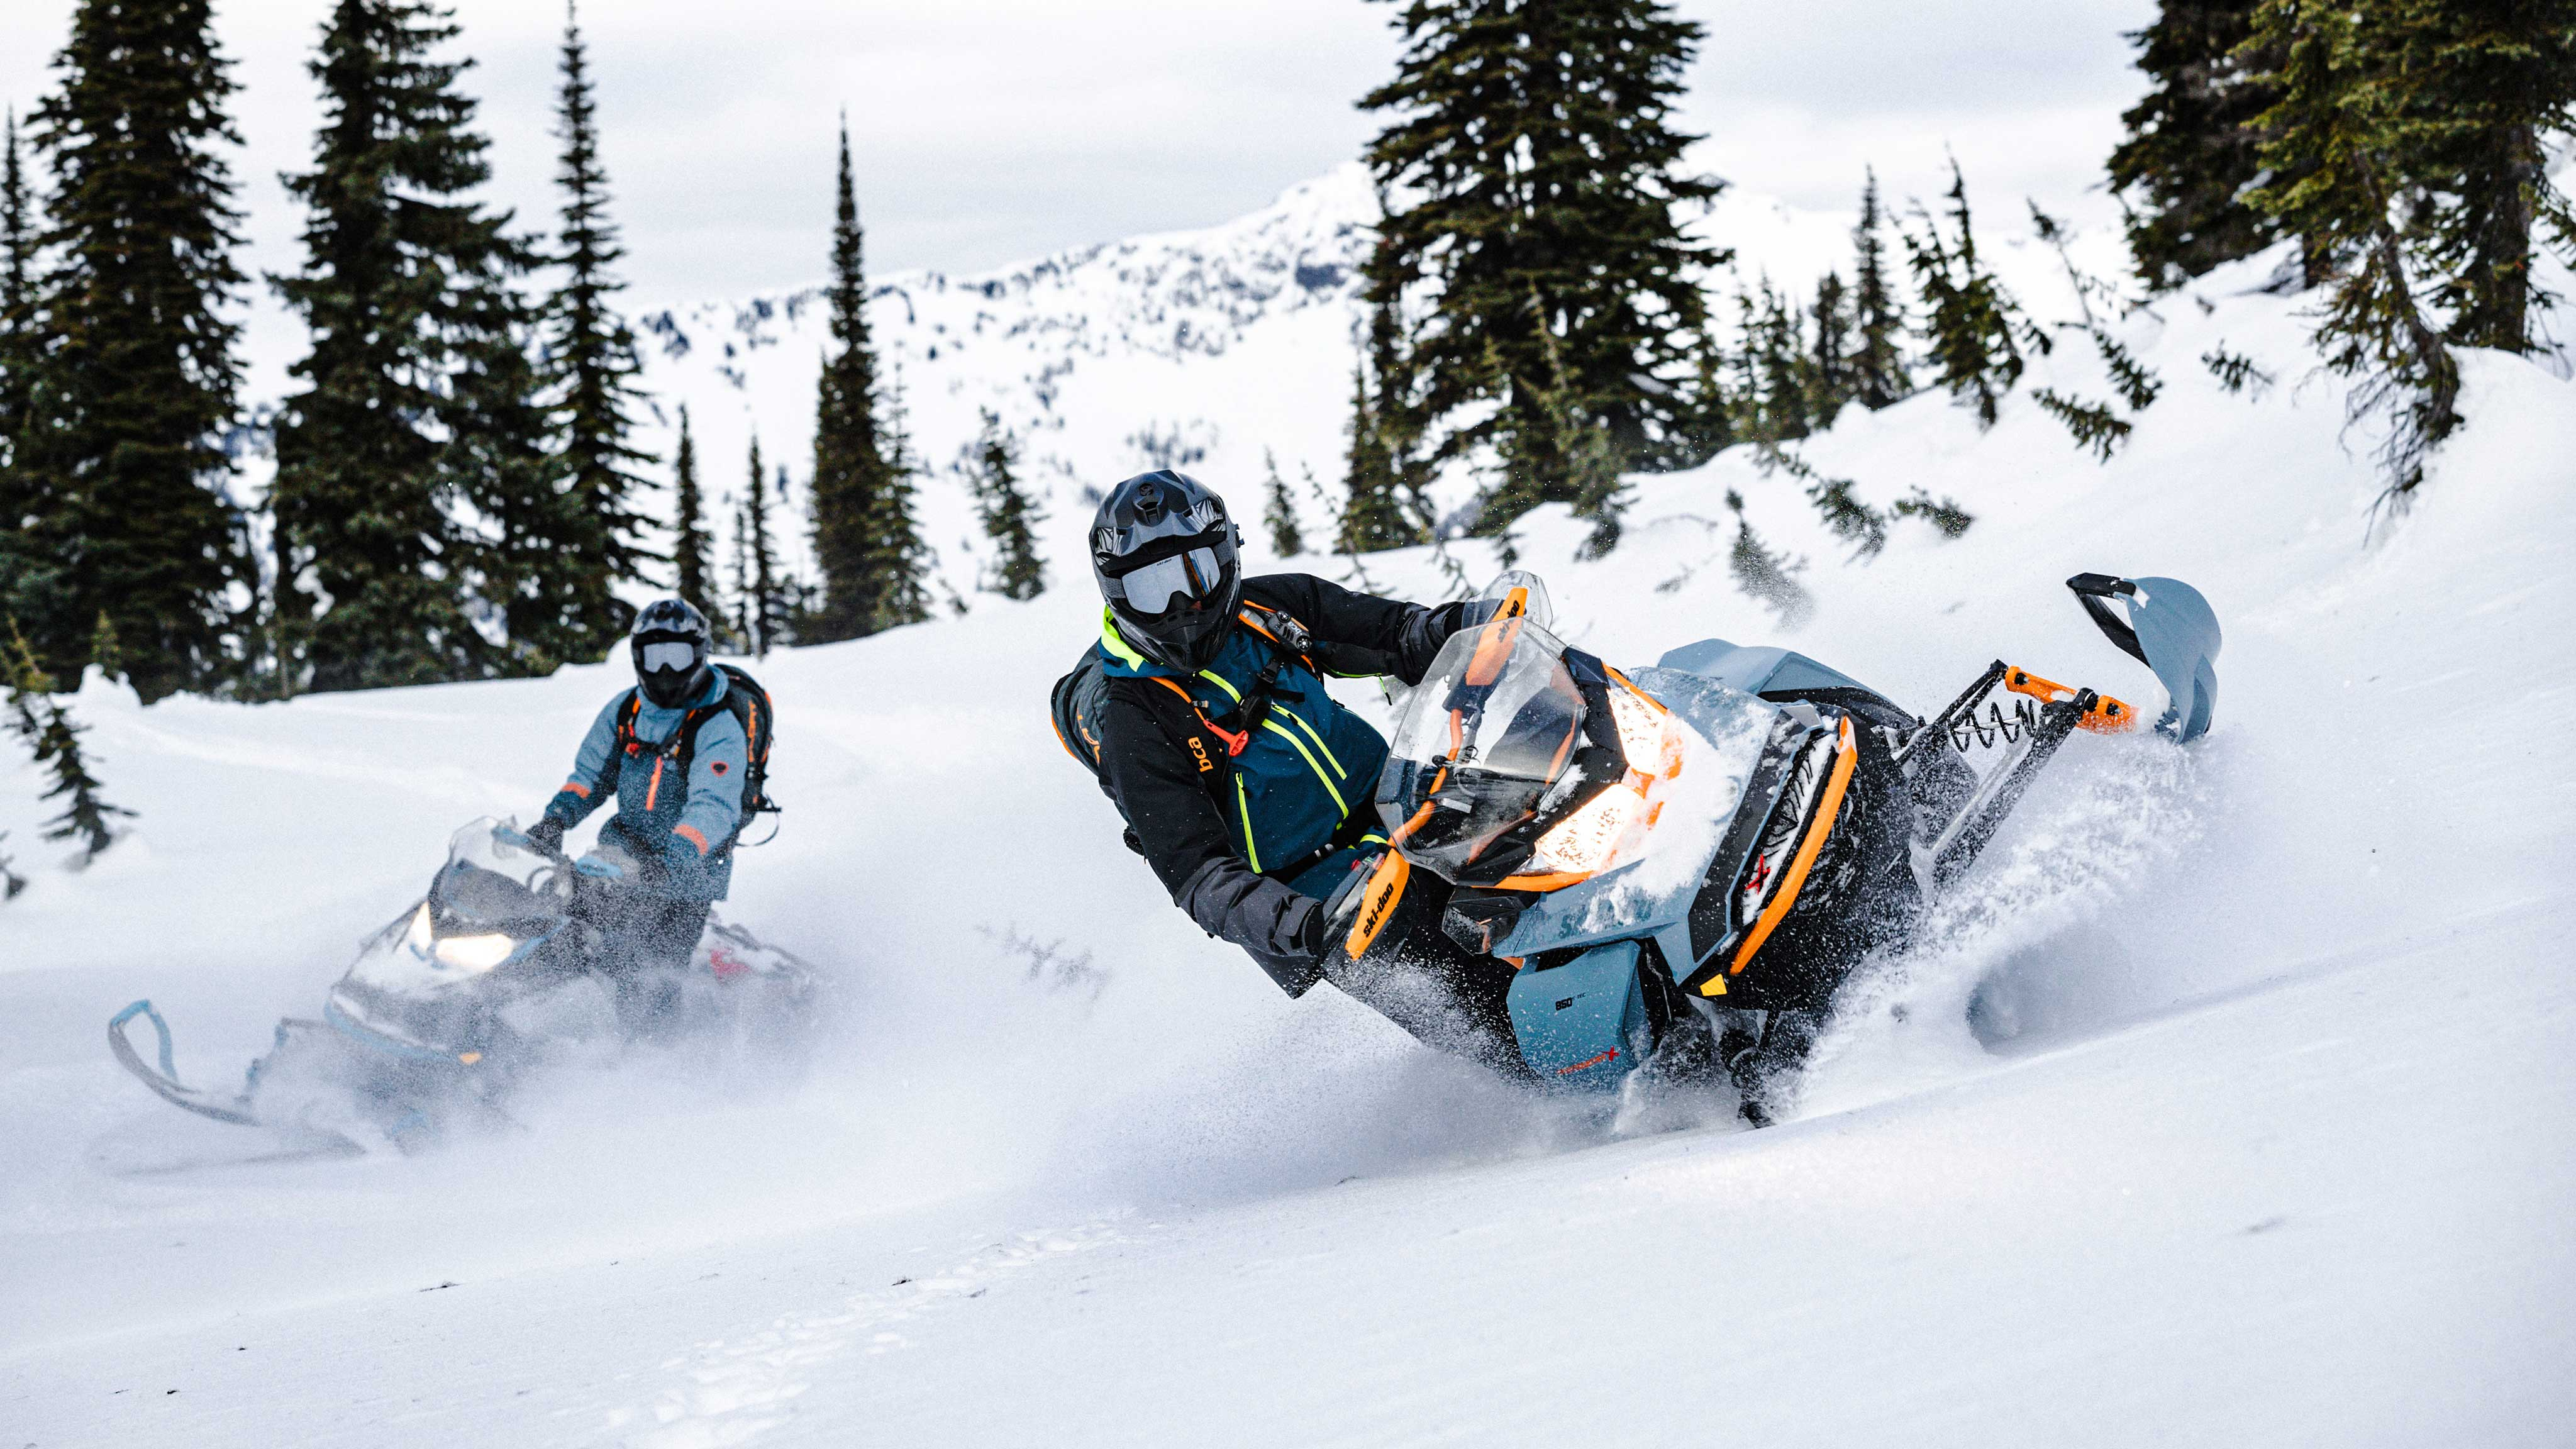 2 riders riding the new 2022 Ski-Doo Backcountry